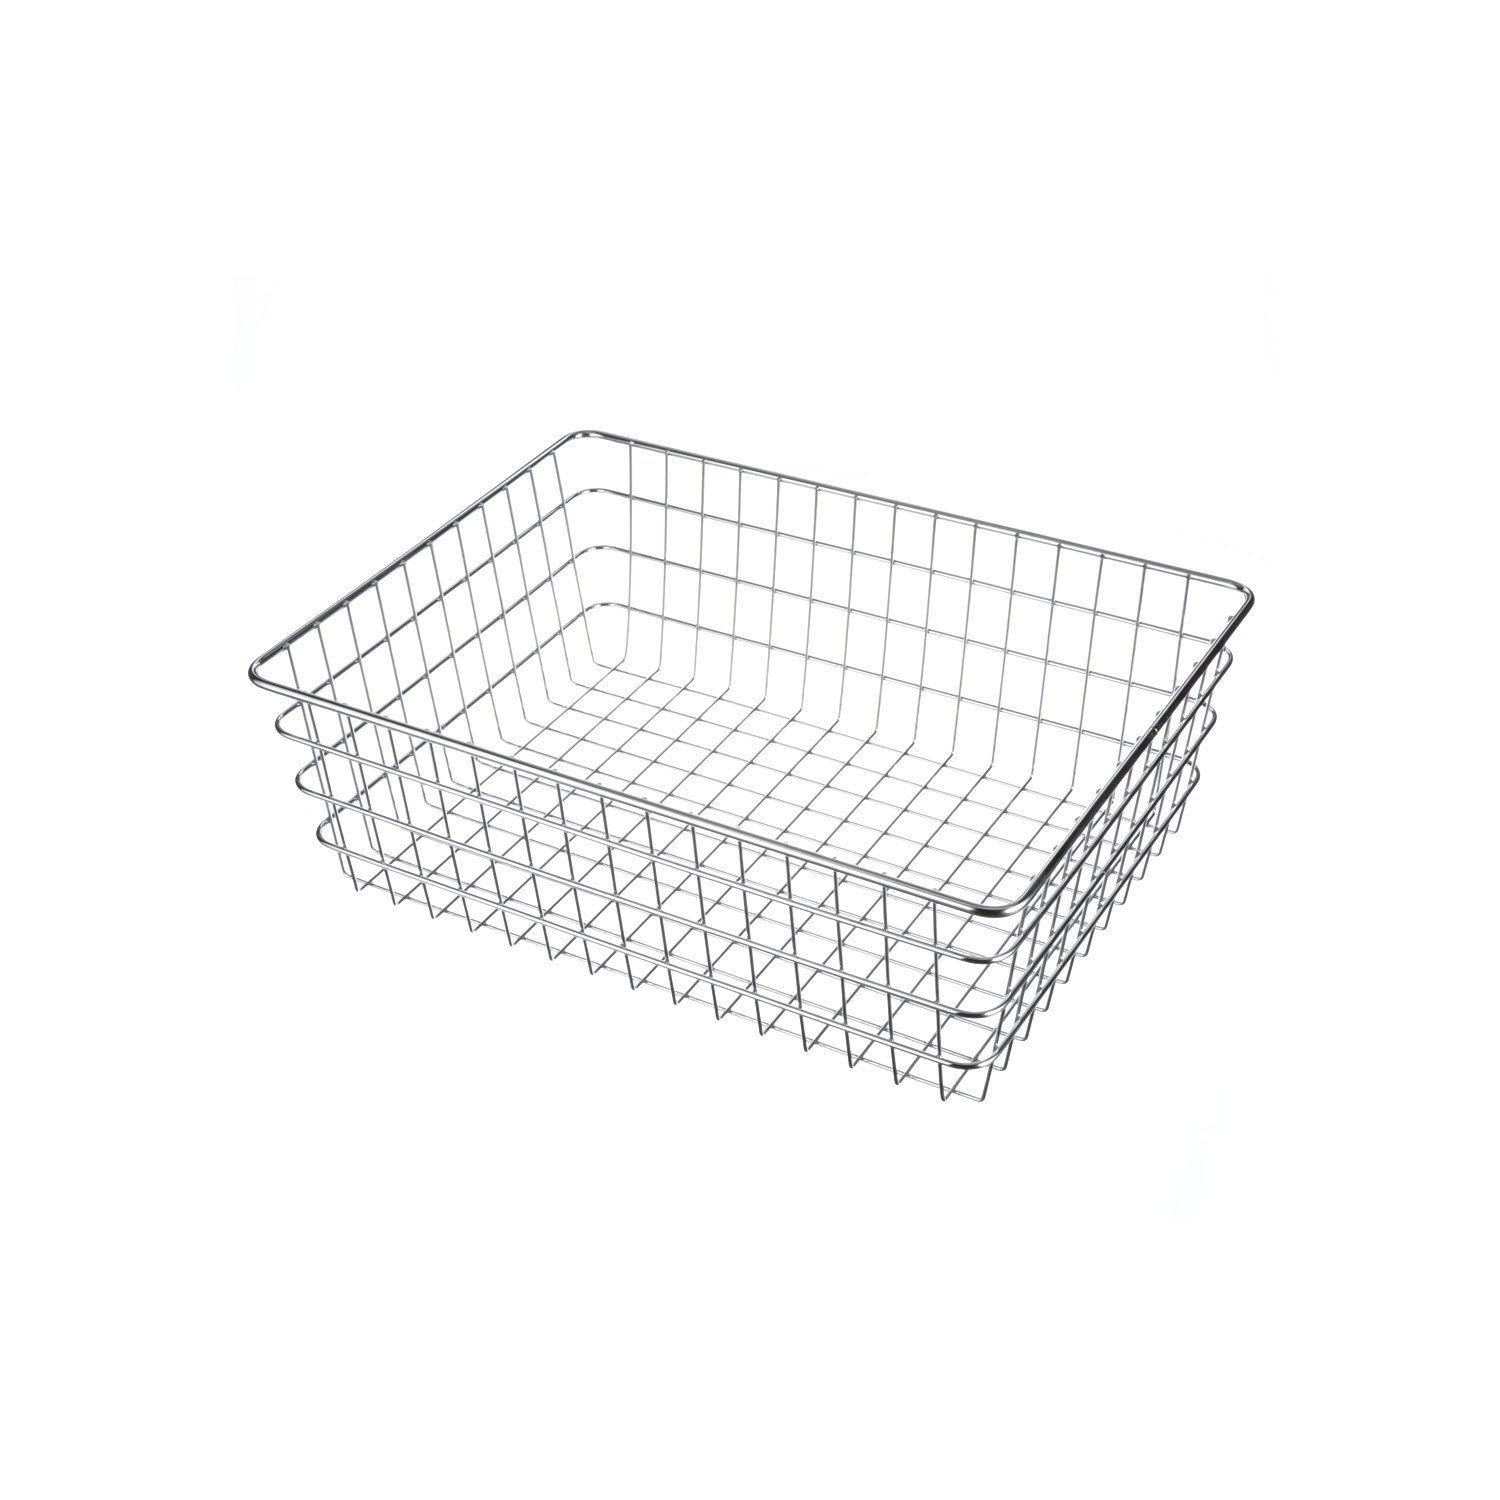 Marlin Steel Chrome Plated Utility Basket (17.75''L x 23.75''W x 8''H) by Marlin Steel Wire Products